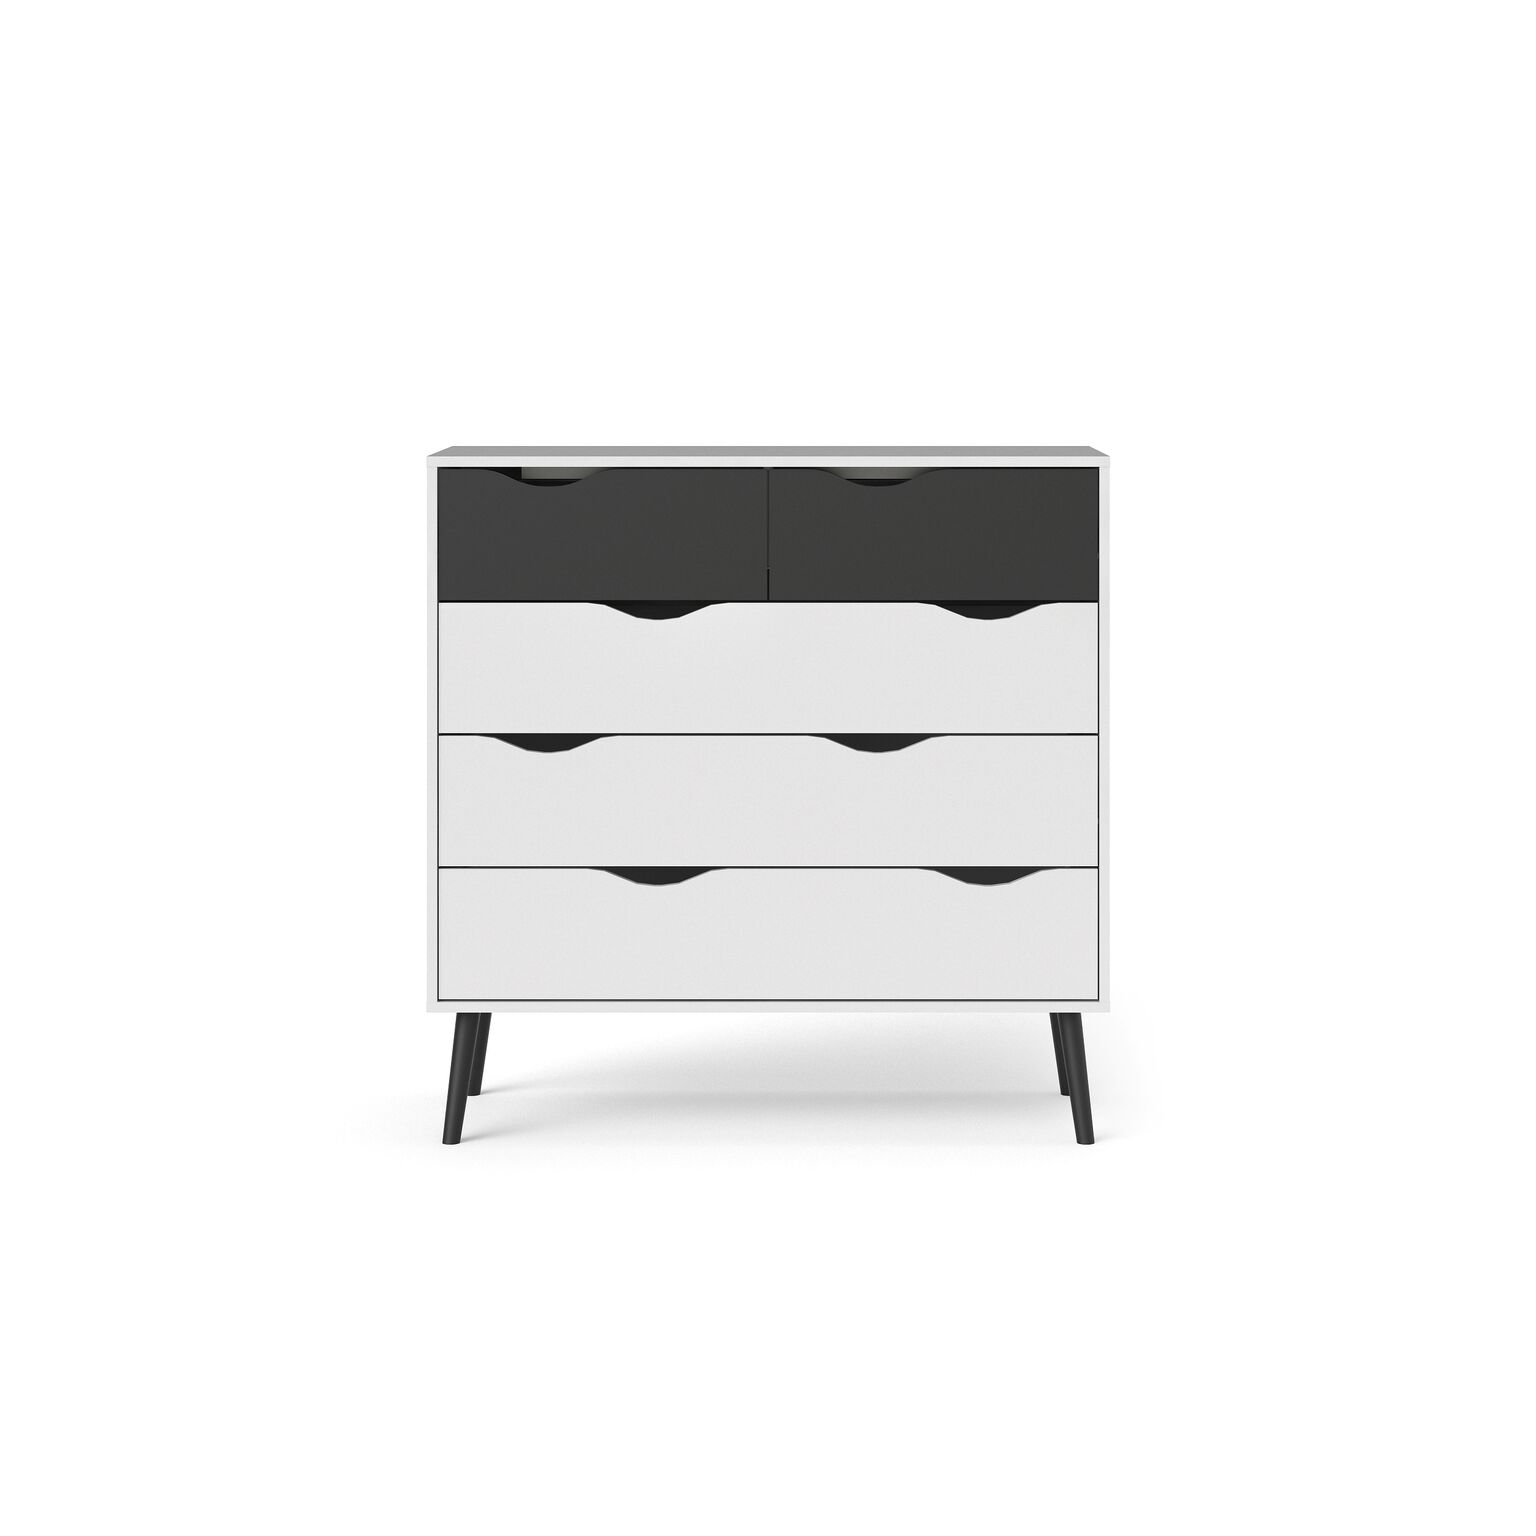 Kommode napoli sideboard anrichte schrank highboard for Kommode highboard weiss